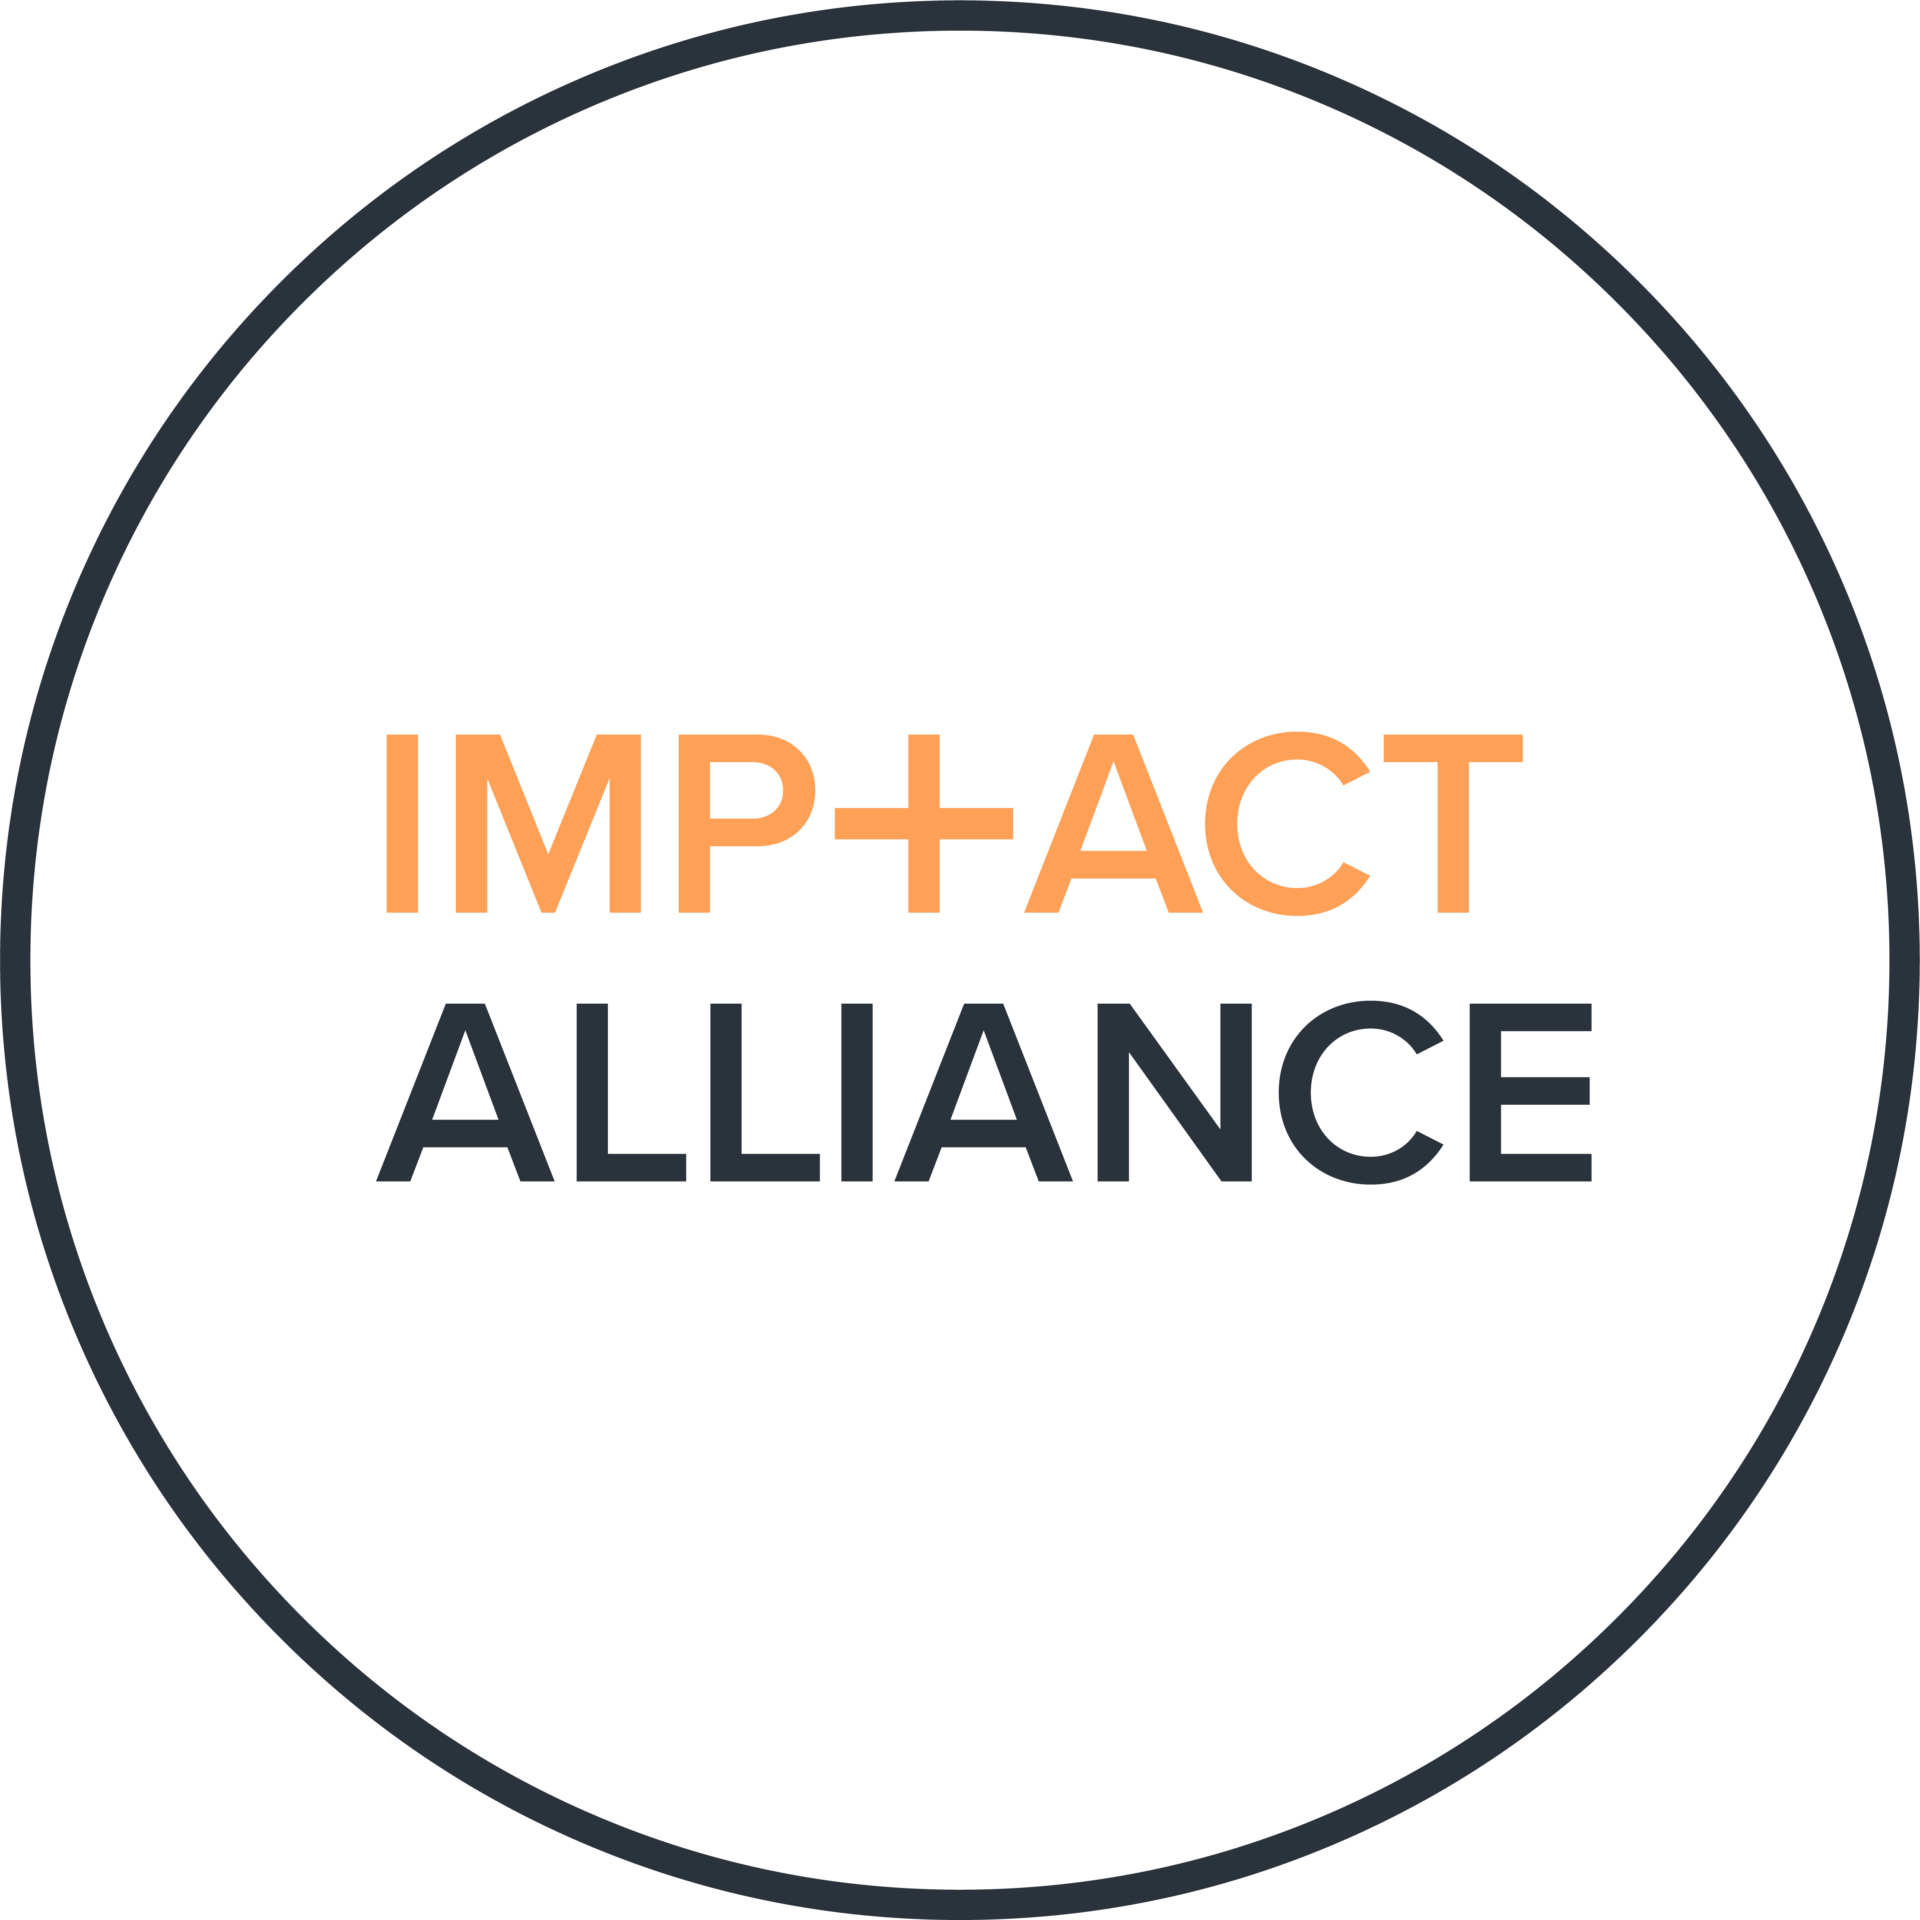 IMP+ACT Alliance